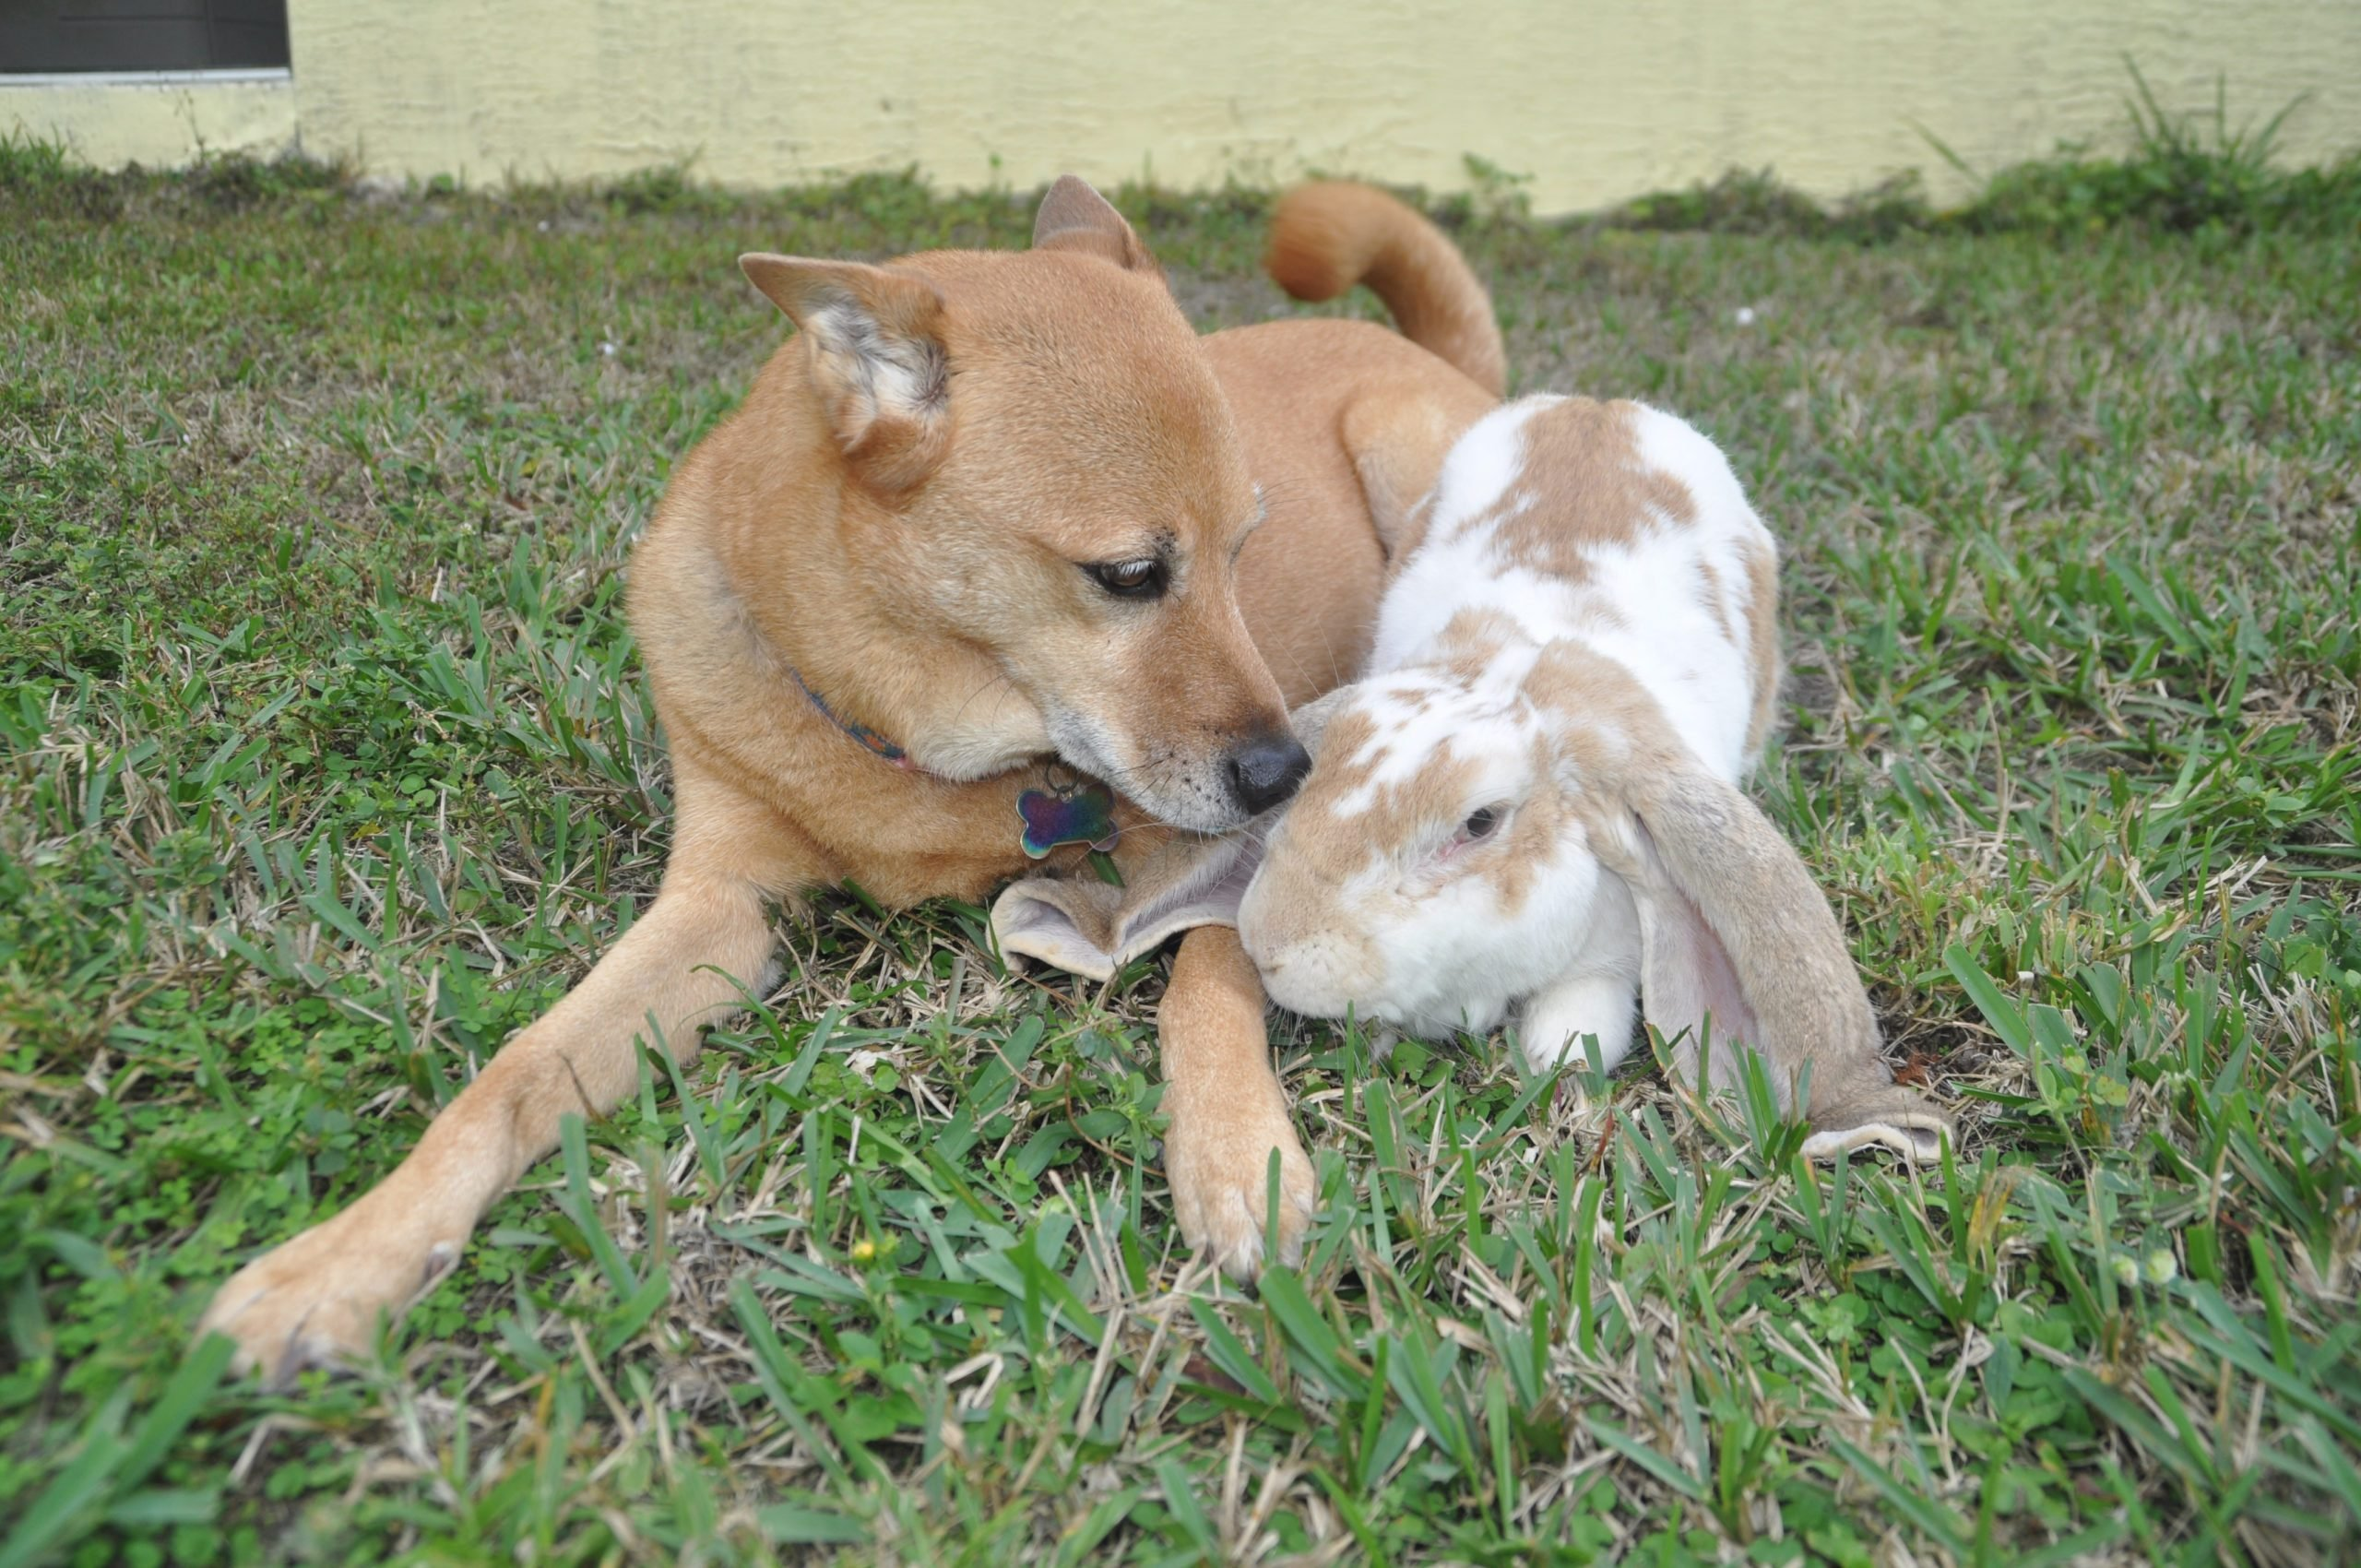 dog and bunny nuzzle in the grass